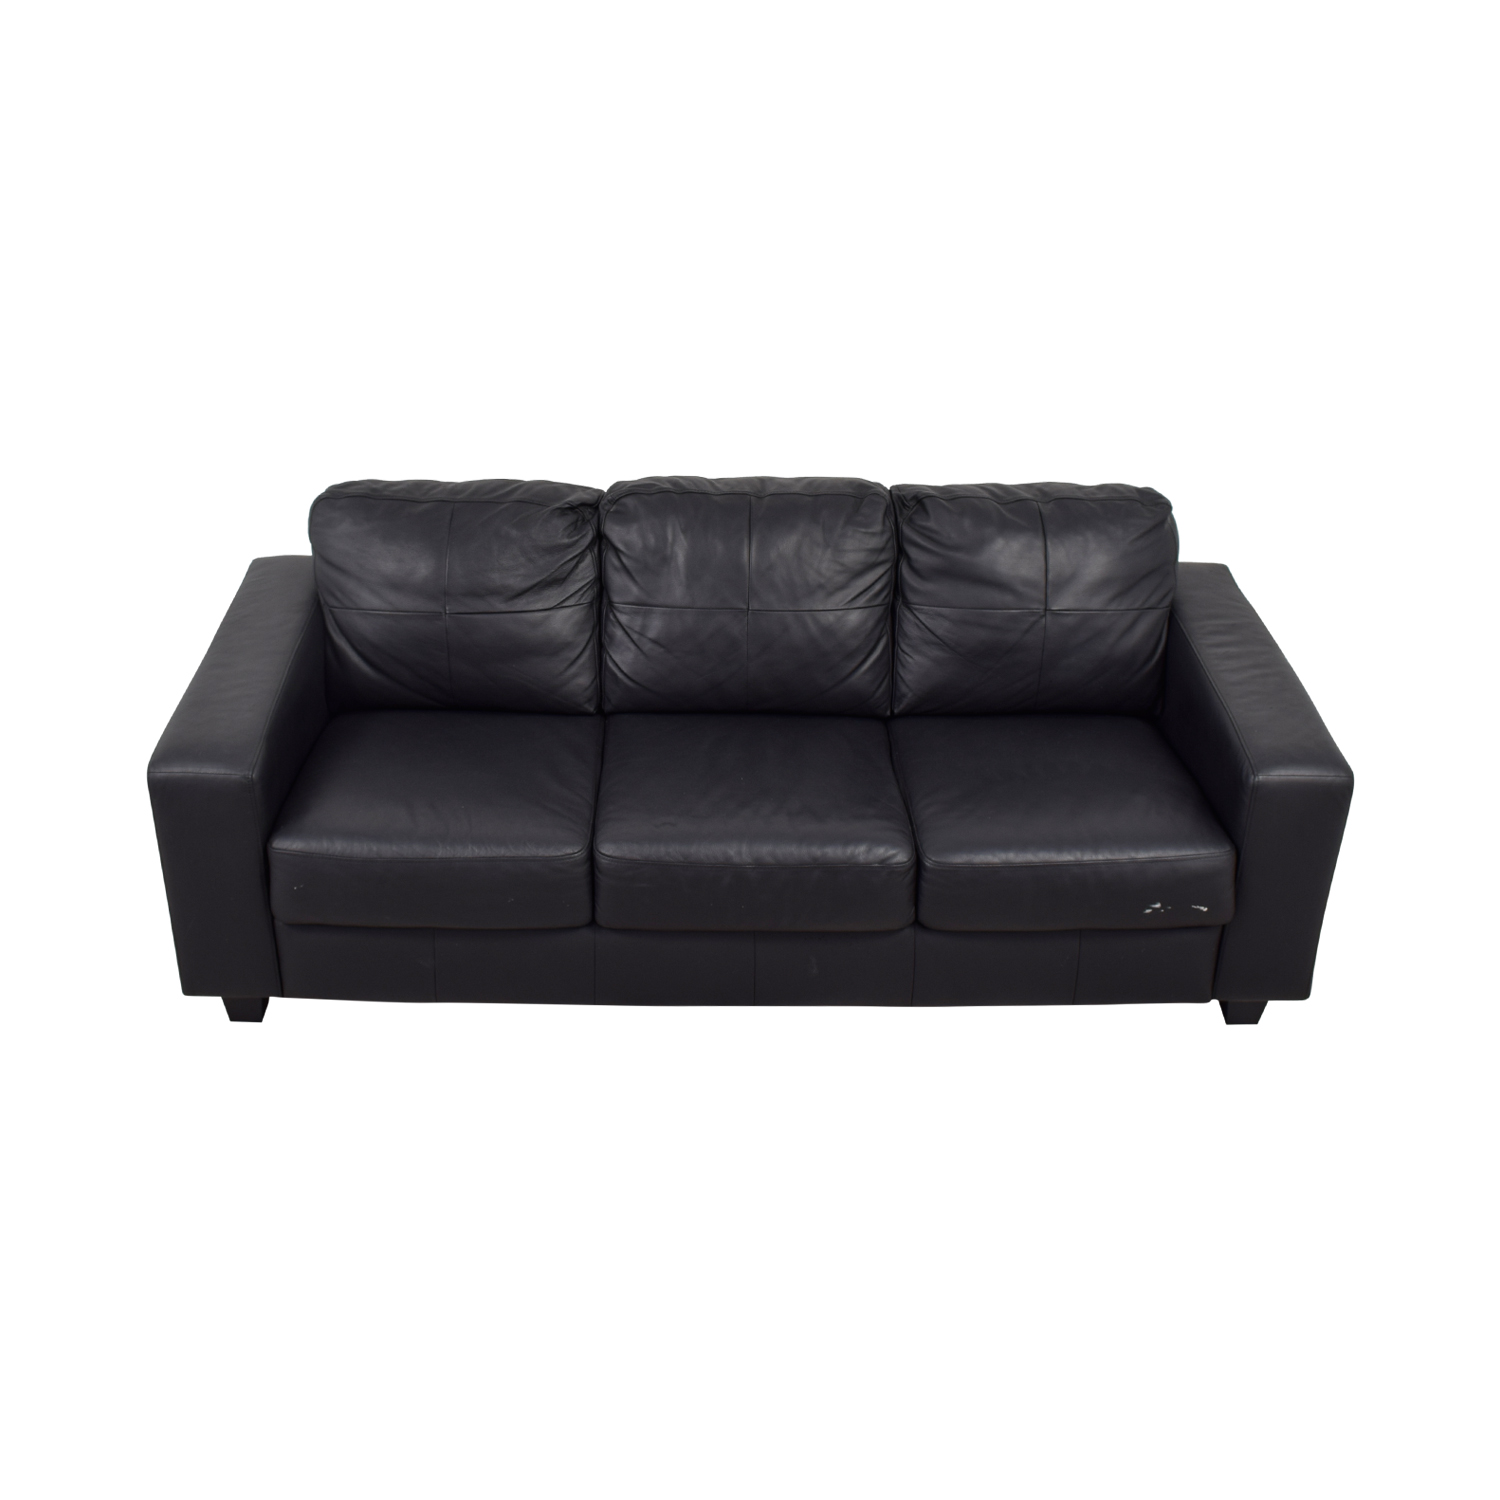 buy IKEA Black Leather Three-Cushion Sofa IKEA